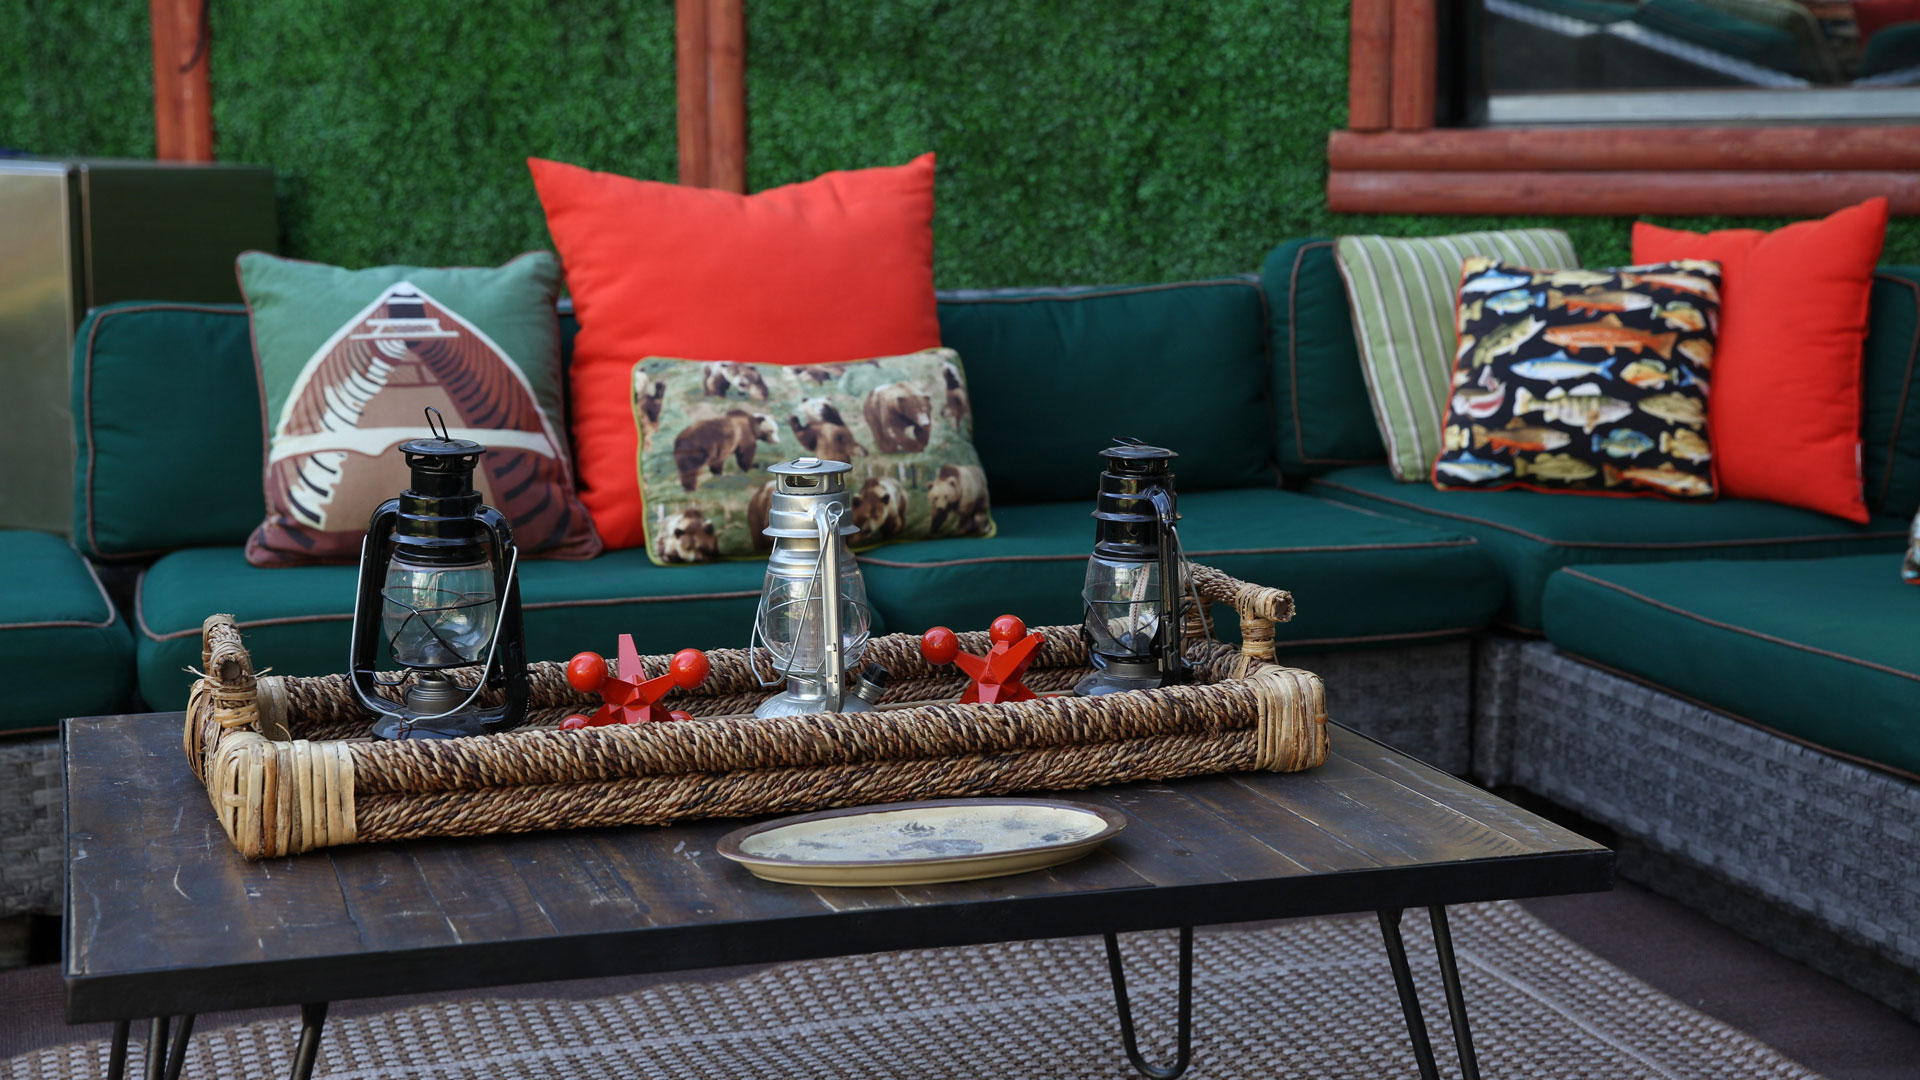 Backyard camping is all the rage for Big Brother: Over the Top.